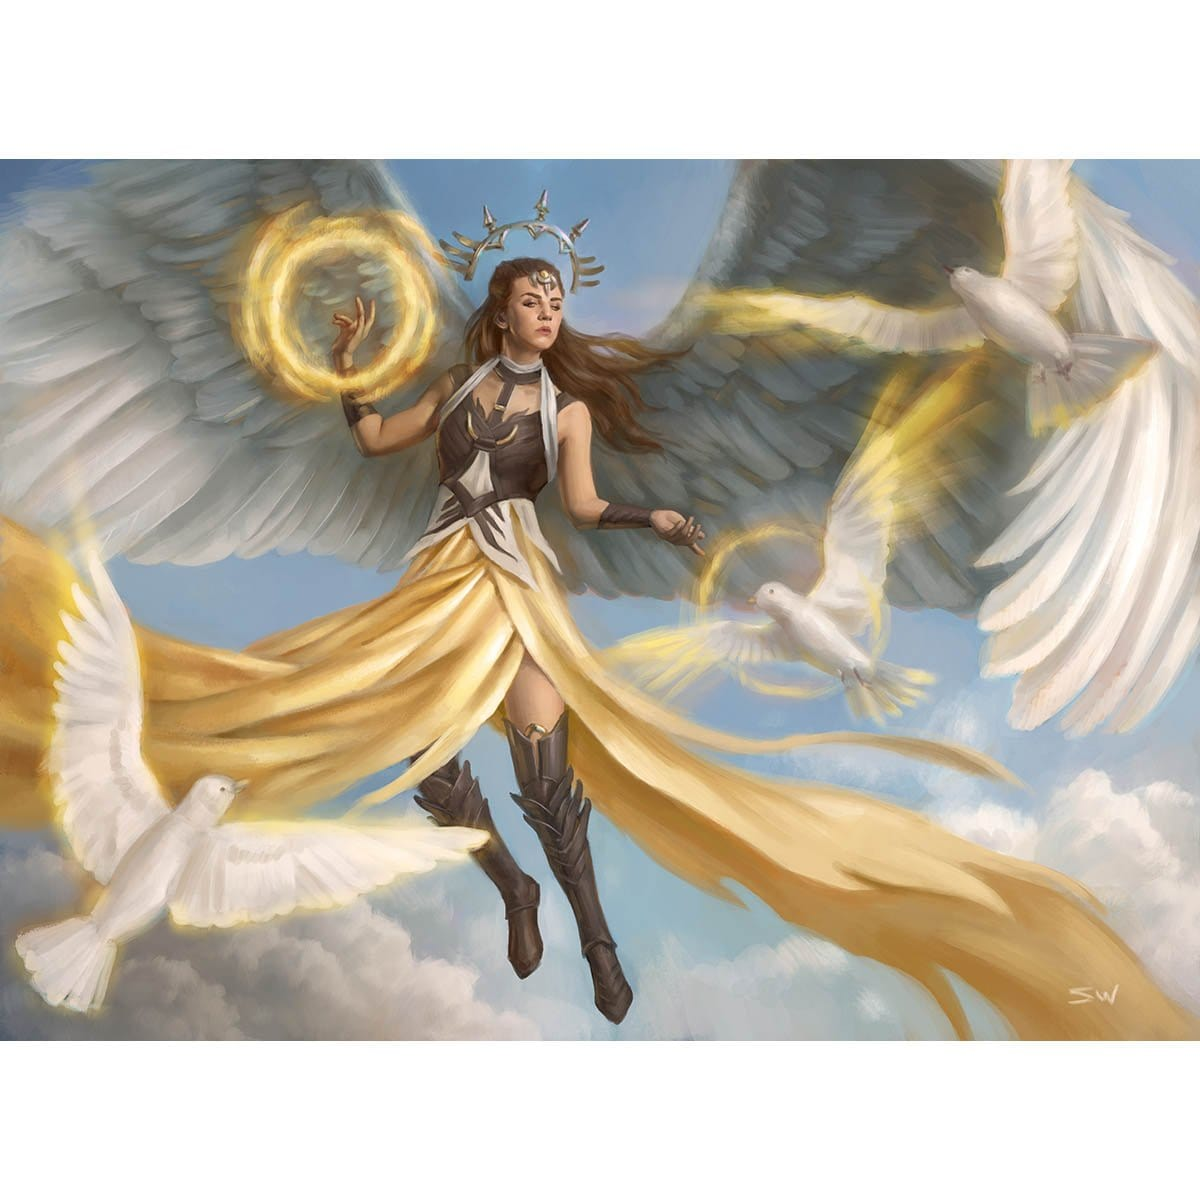 Angelic Guardian Print - Print - Original Magic Art - Accessories for Magic the Gathering and other card games